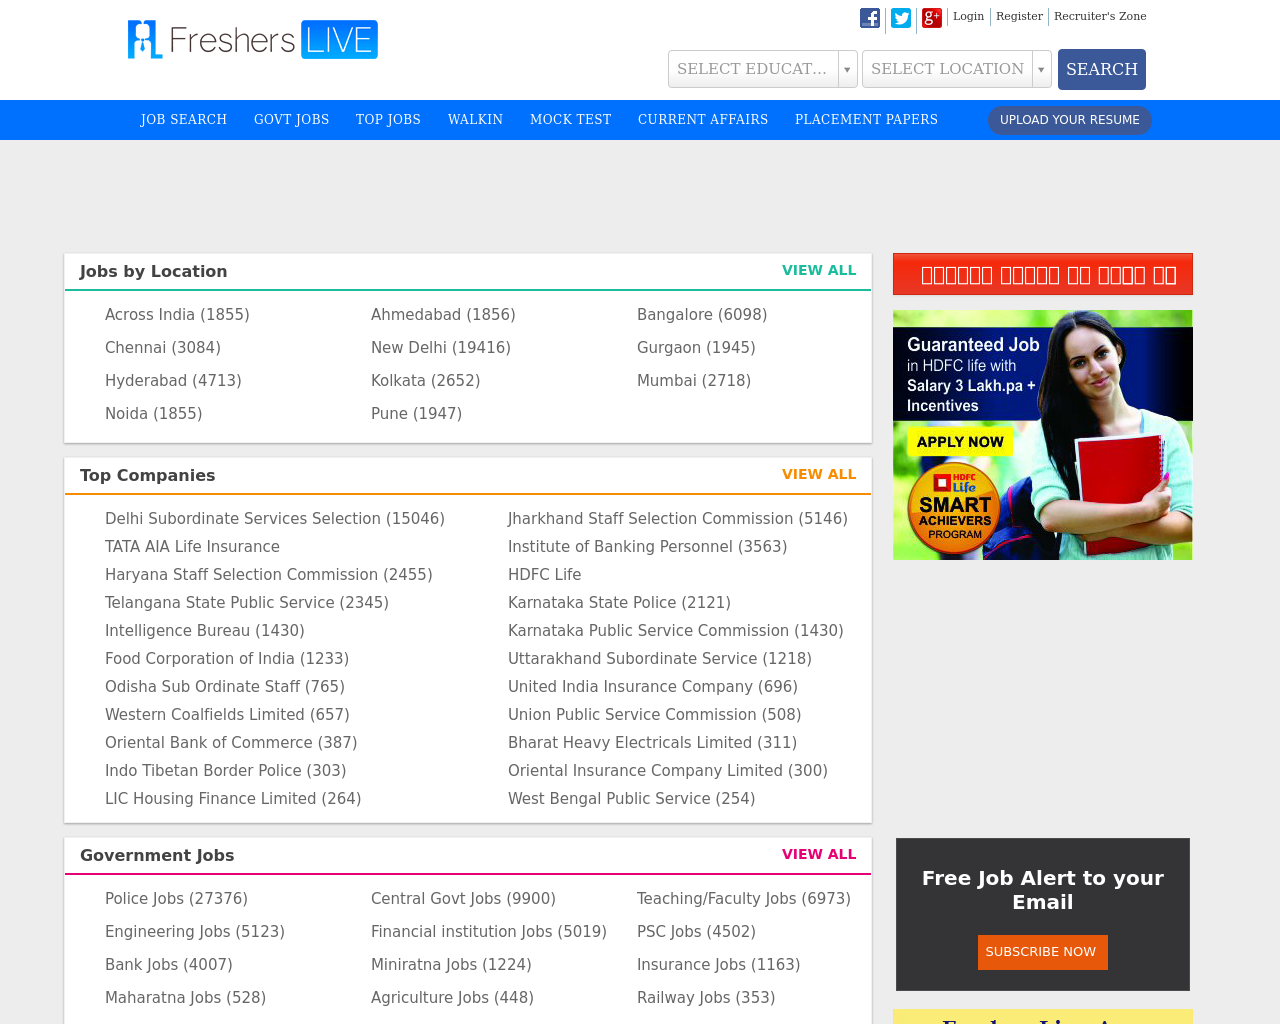 Fresherslive-Advertising-Reviews-Pricing